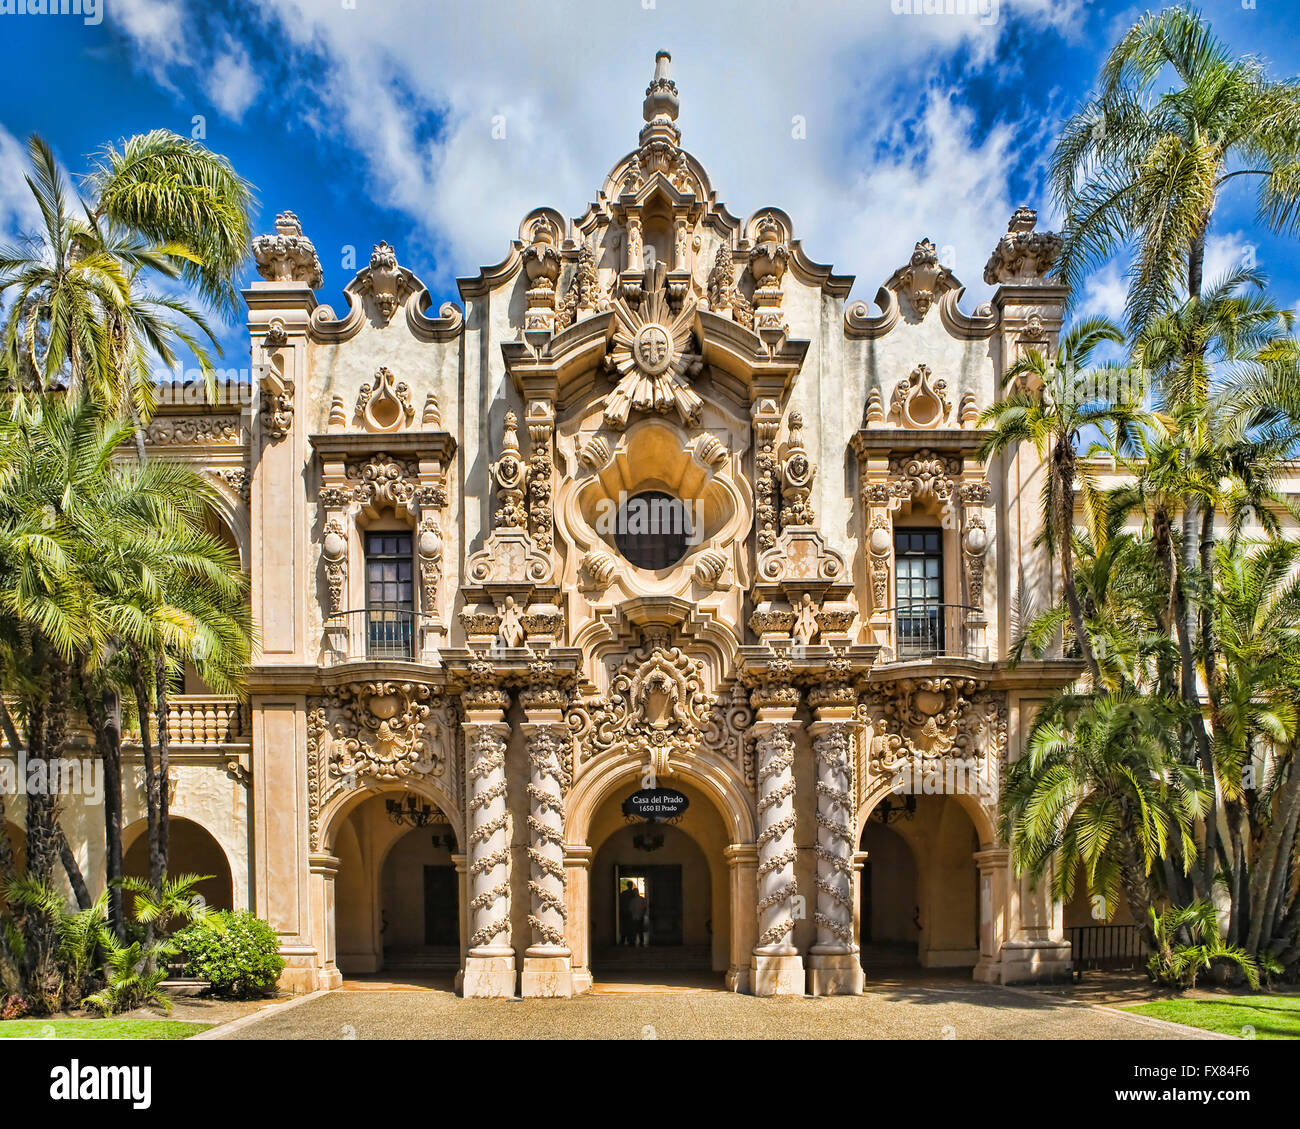 Spanish Architecture: Casa Del Prado In Balboa Park, San Diego CA. This  Significant Horticultural And Cultural Resource Has Mo